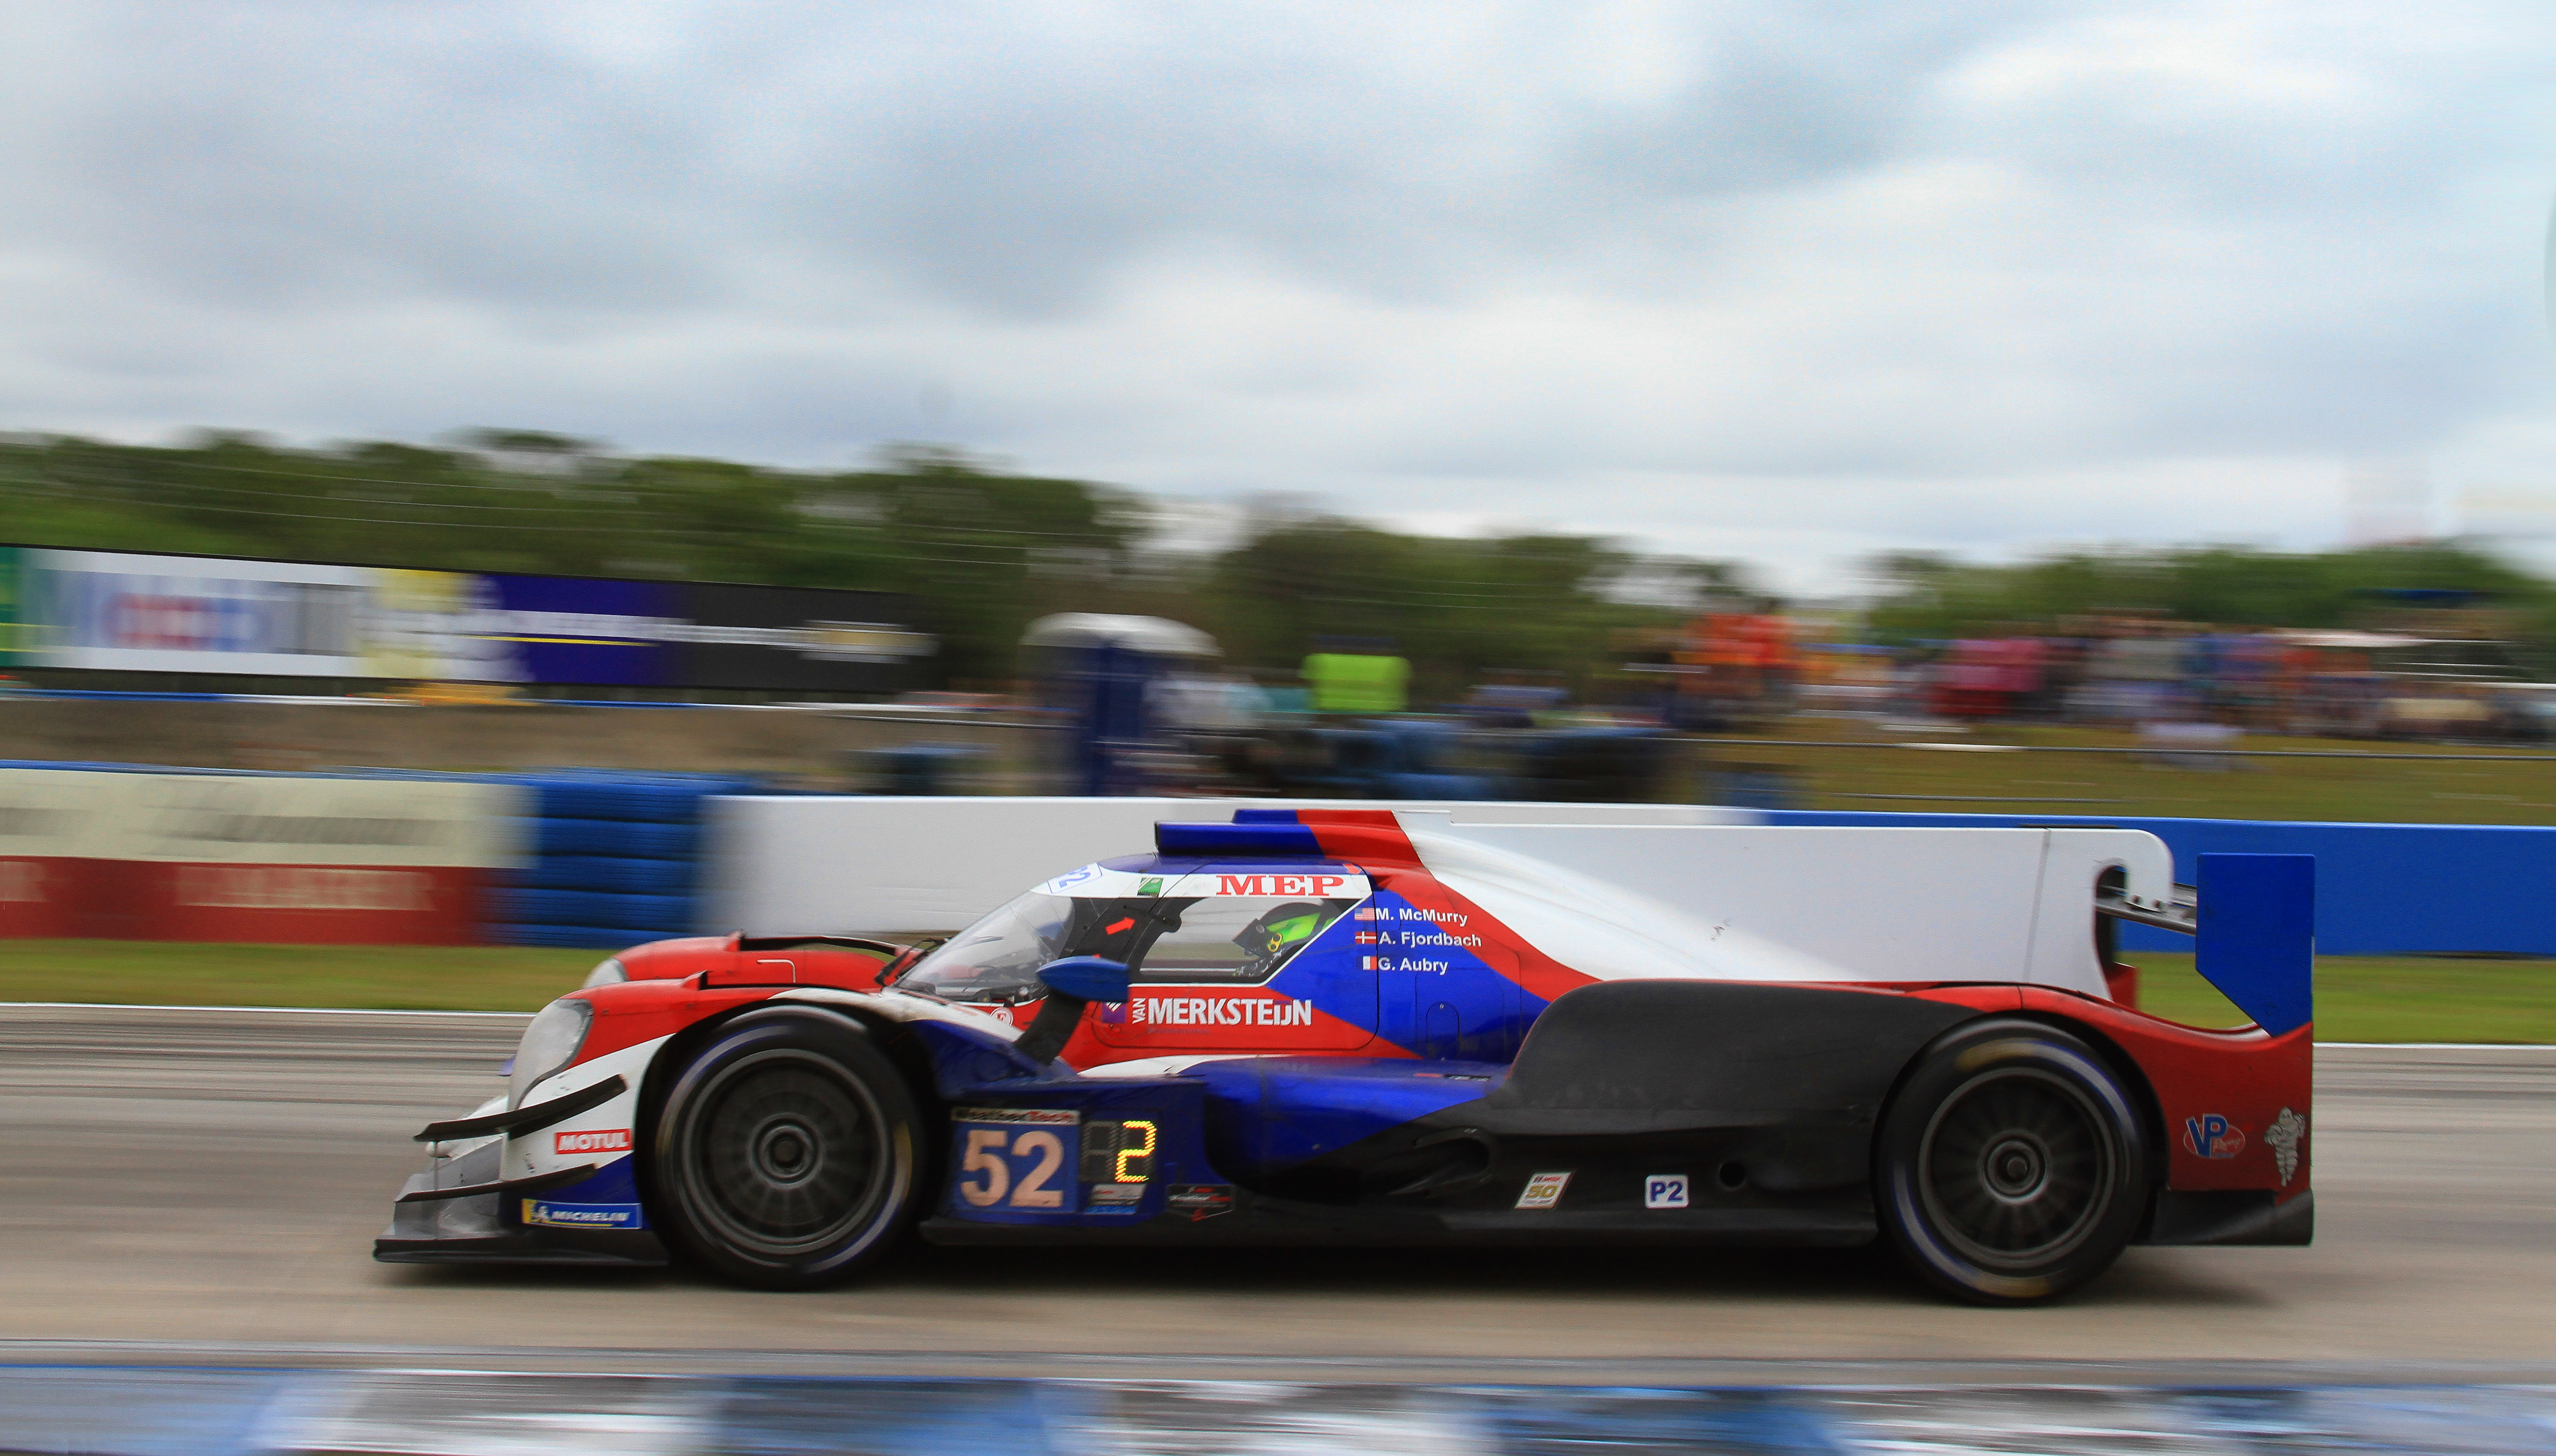 The #52 Pr1-Mathiesen P2 Oreca broke less than three hours into the race.